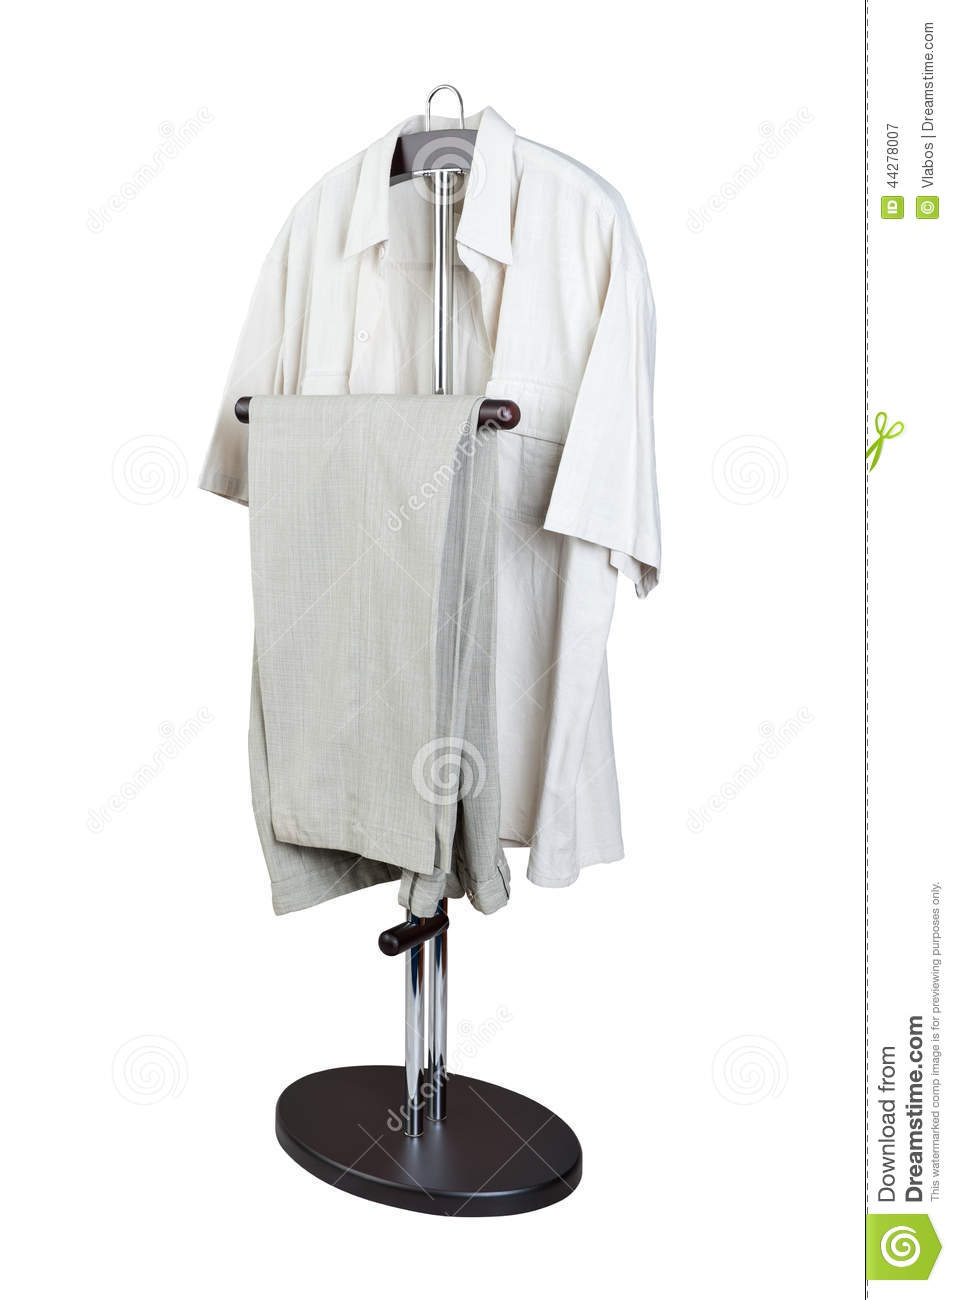 Clothes hanger stock photo image 44278007 for Clothespin photo hanger